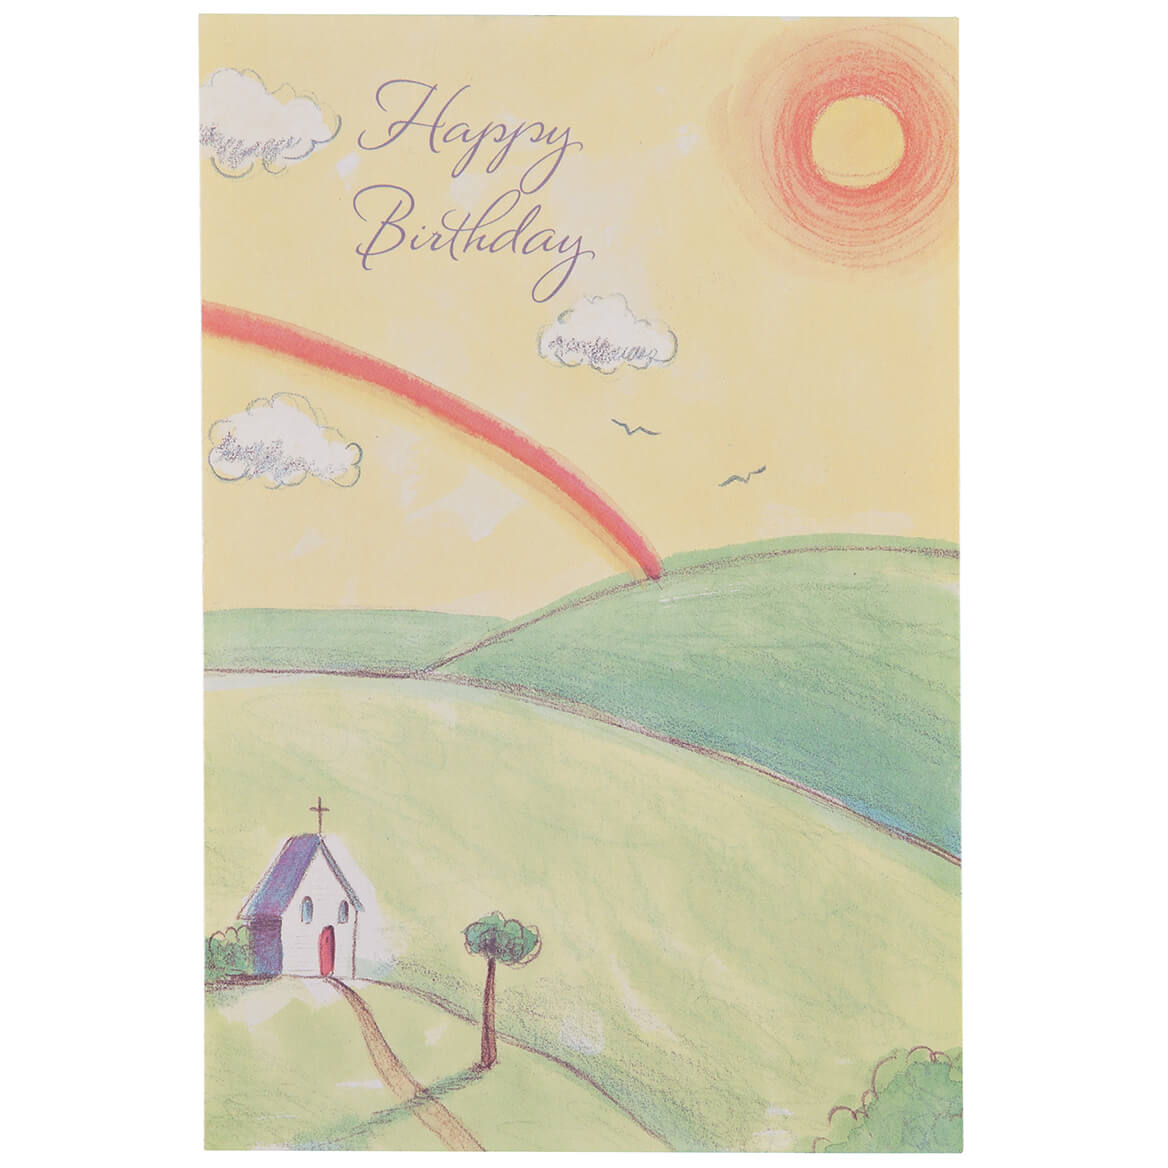 Religious Cards For All Occasions - Boxed Greeting Cards - Walter Drake